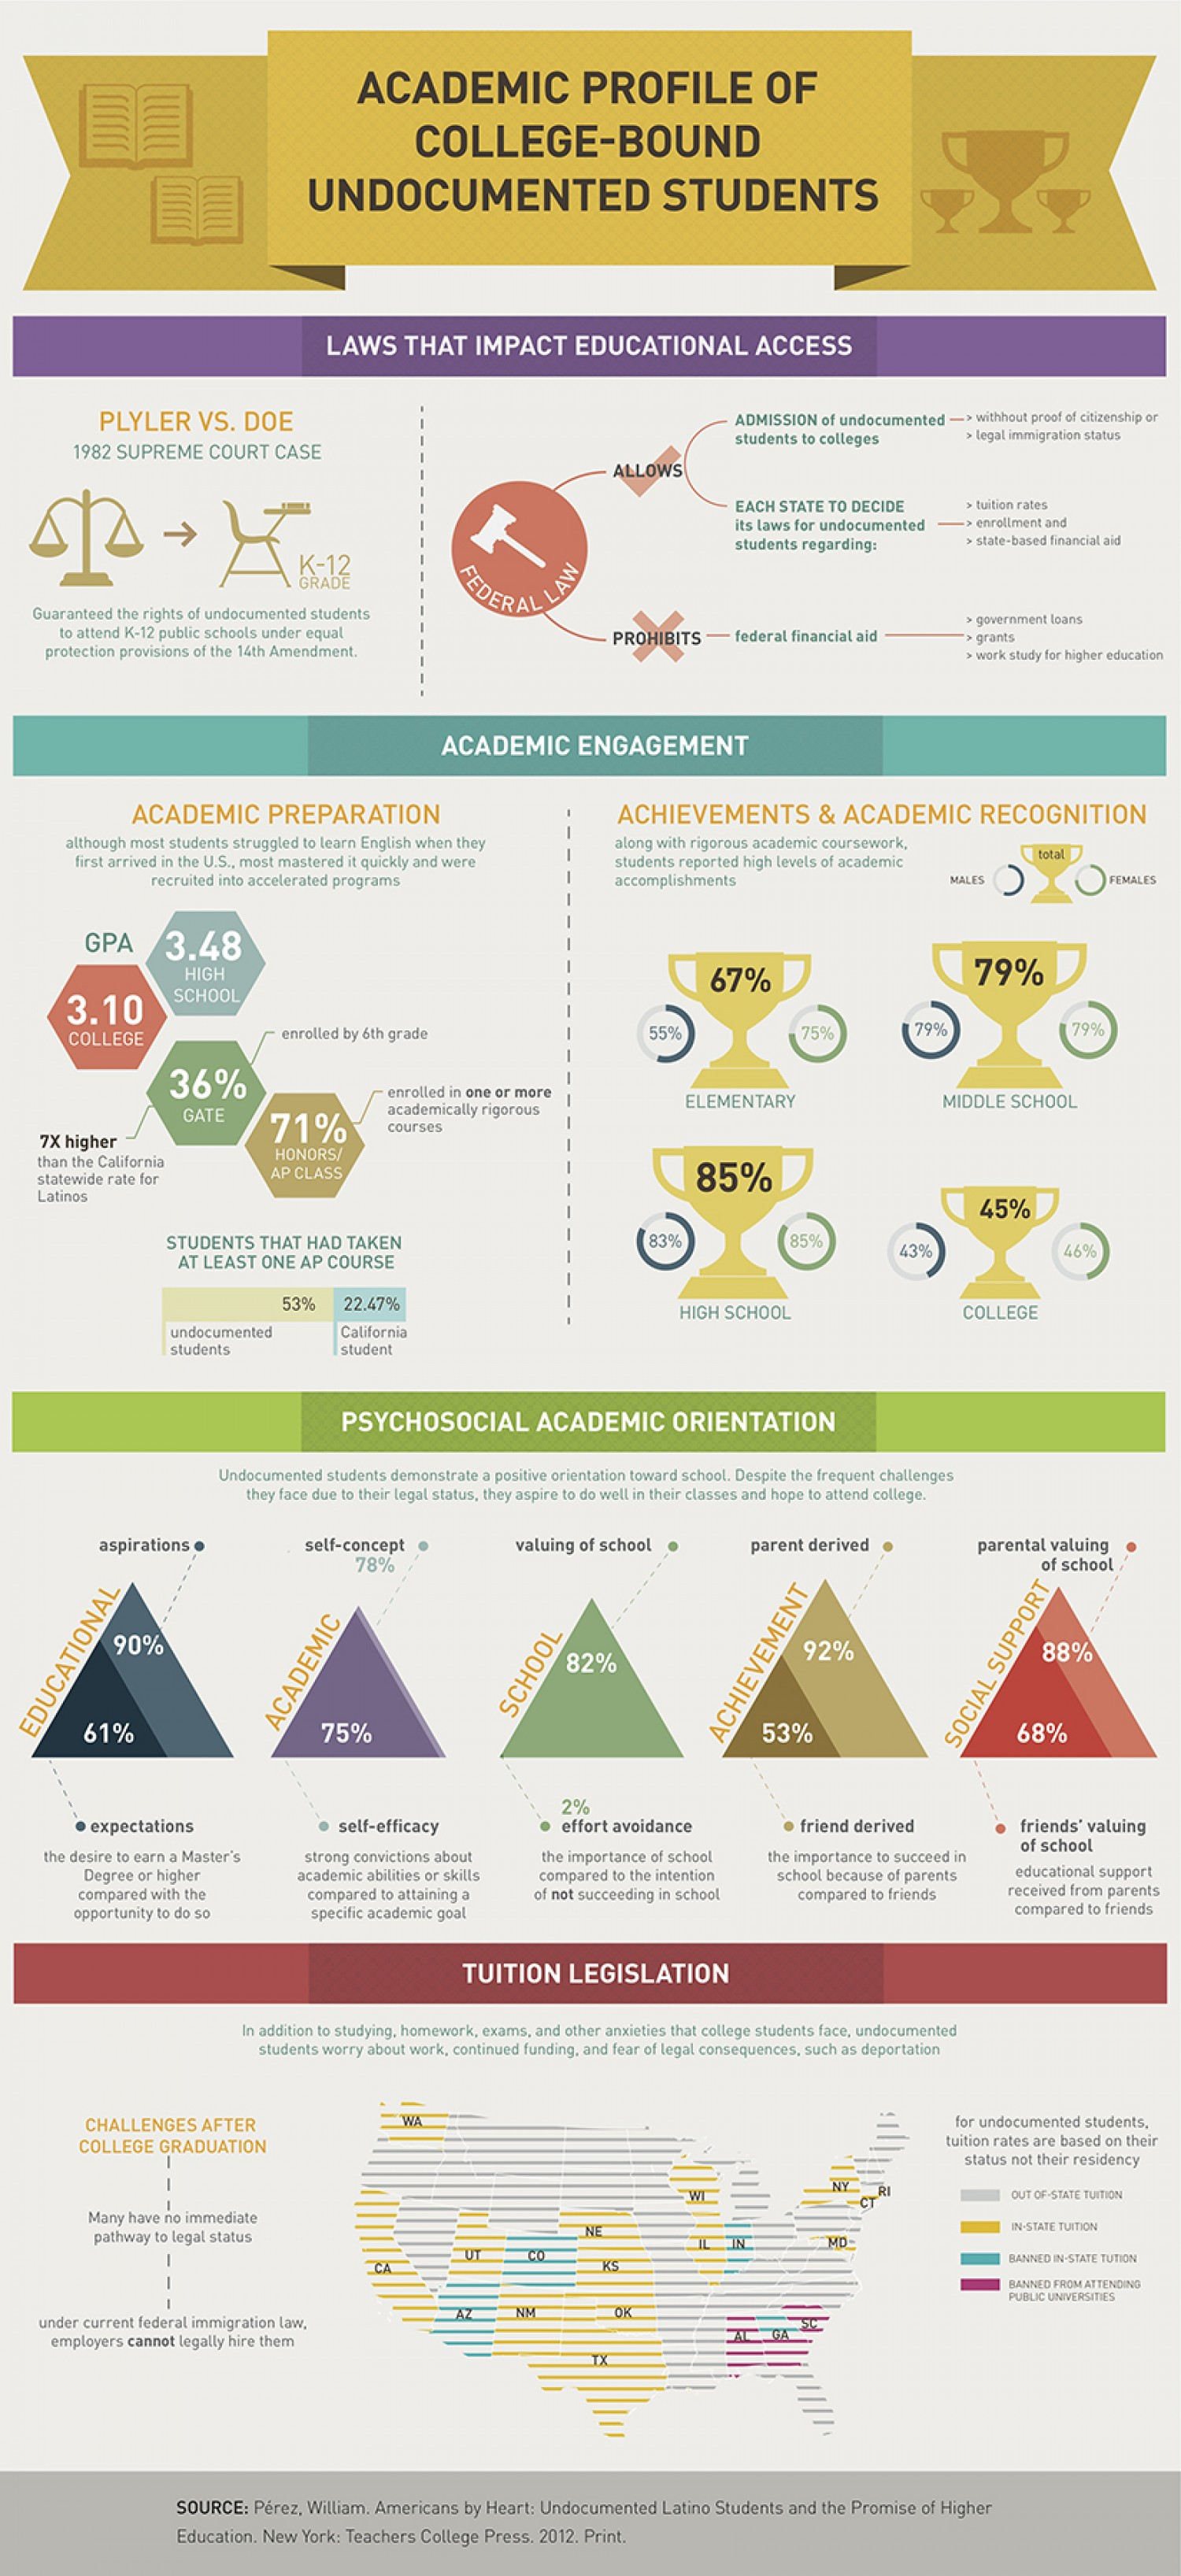 Academic Profile of College-Bound Undocumented Students